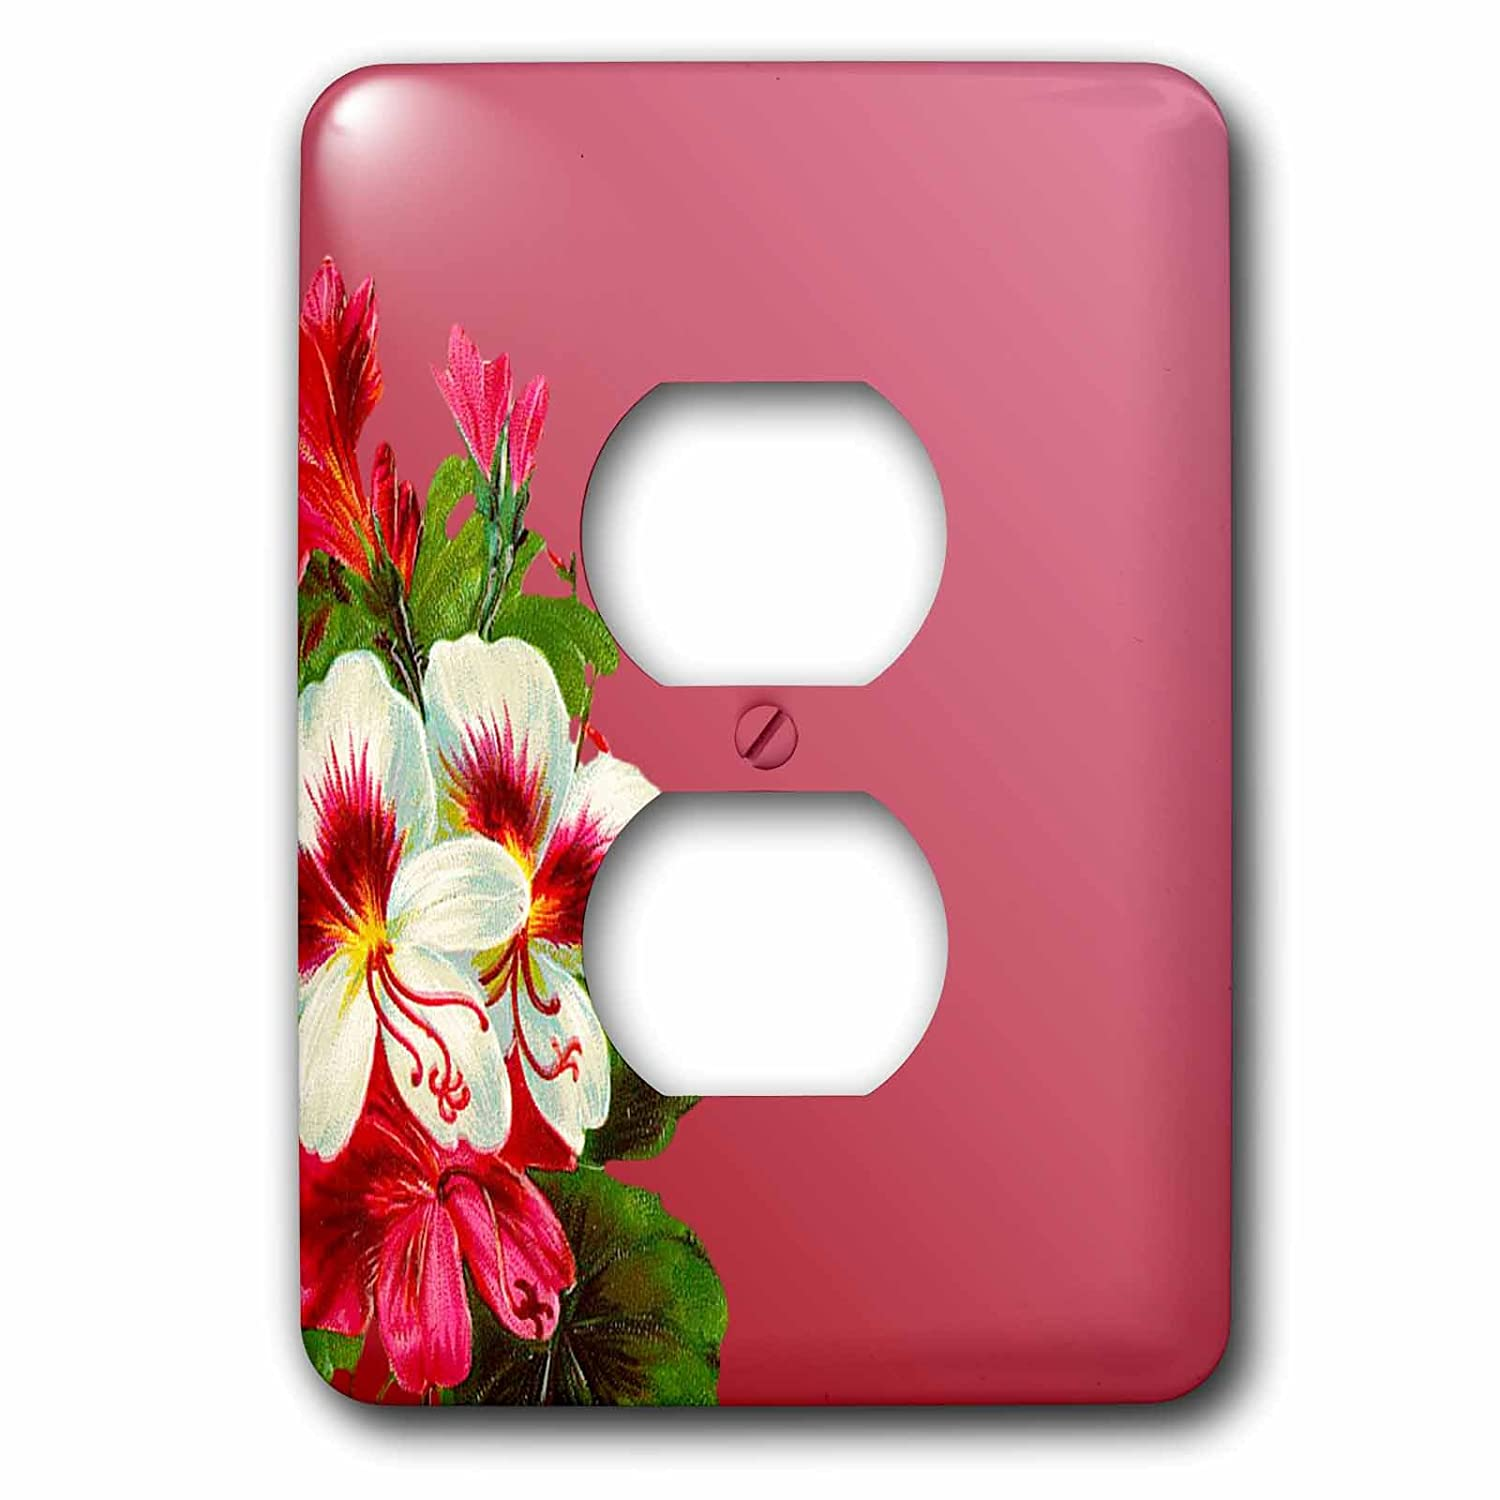 3dRose LSP/_222943/_6 White Colored Flowers on Rose Background 2 Plug Outlet Cover